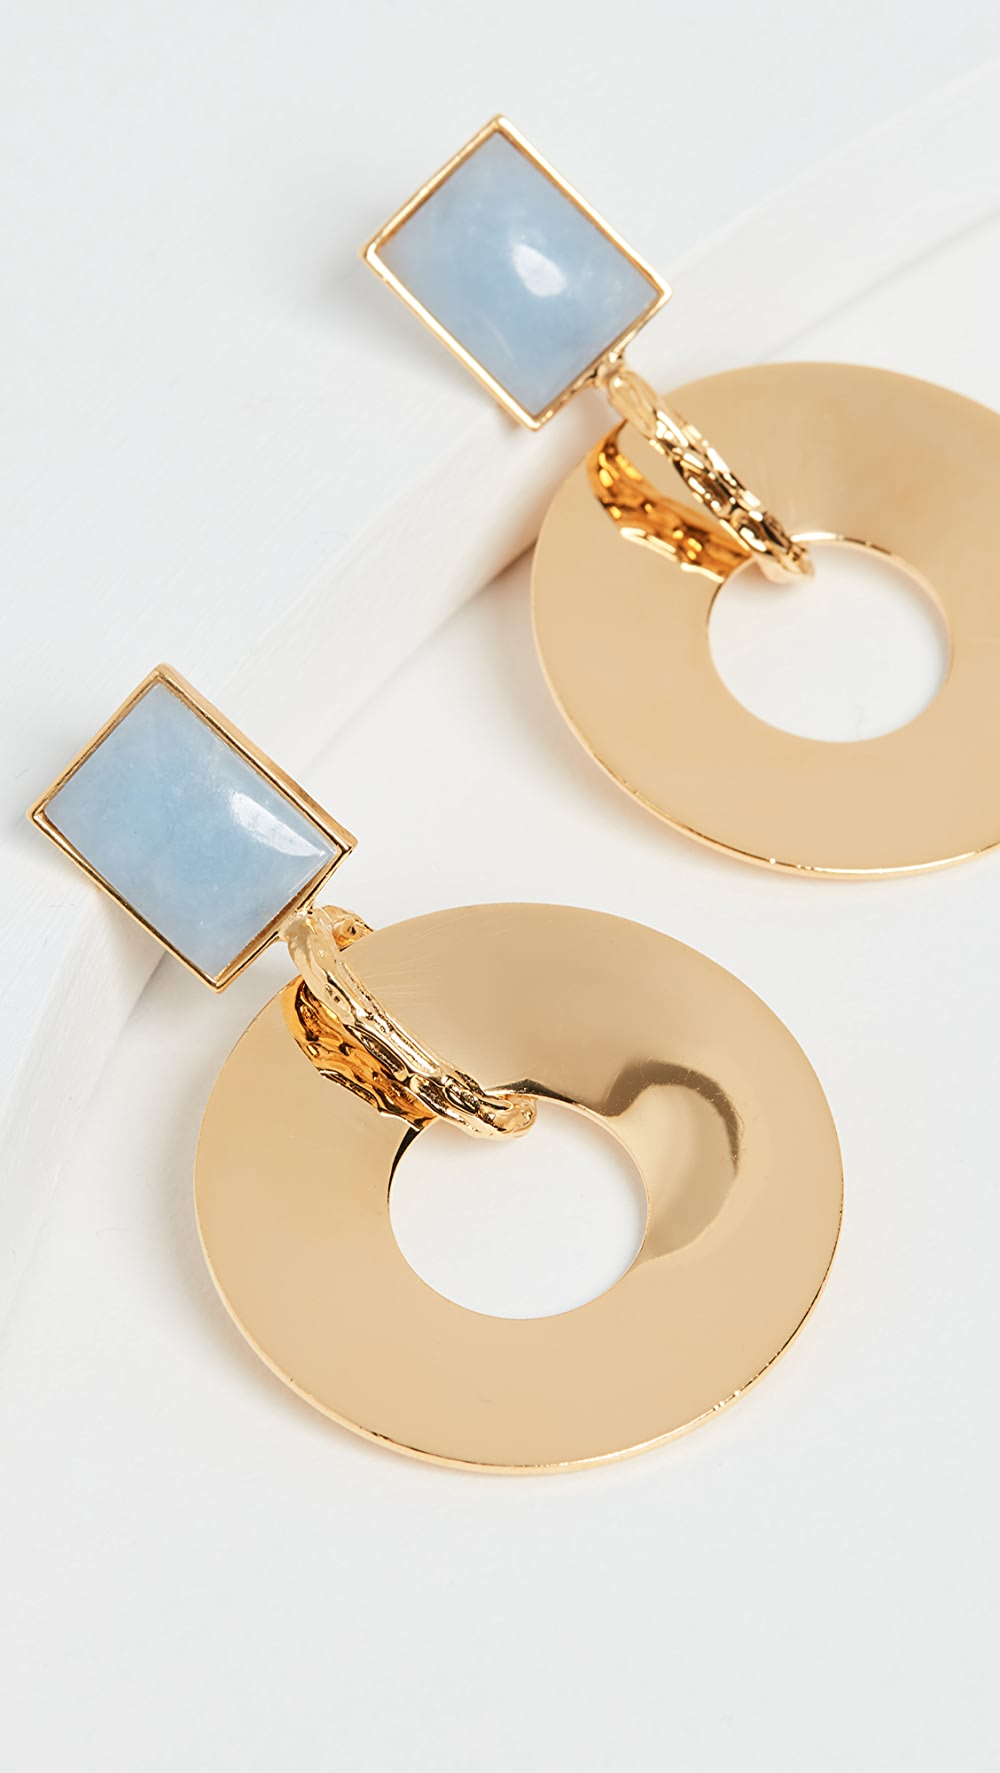 100% Quality Lizzie Fortunato - Promenade Hour Earrings Up-To-Date Styling